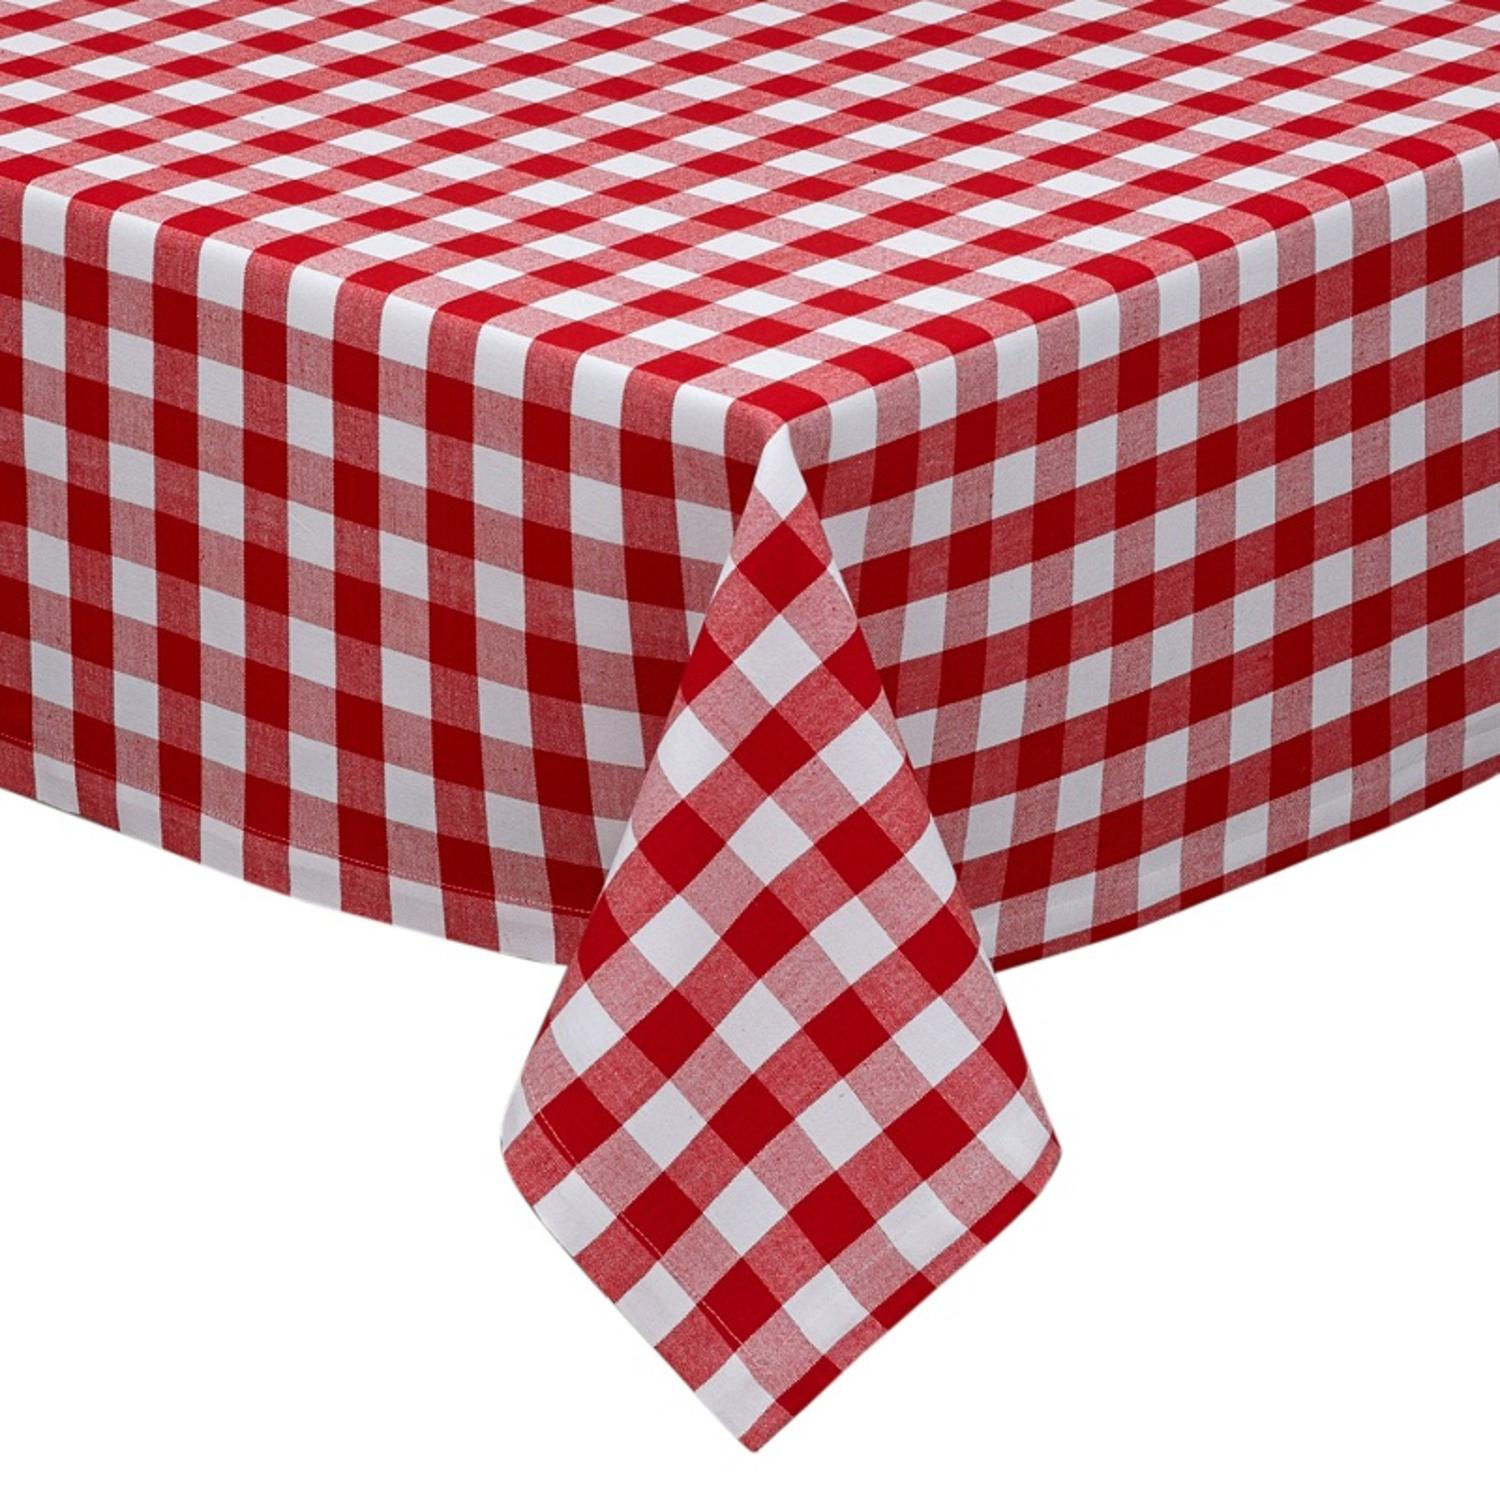 Country Classic Brick Red U0026 Pure White Checkered Square Table Cloth 52 X ...